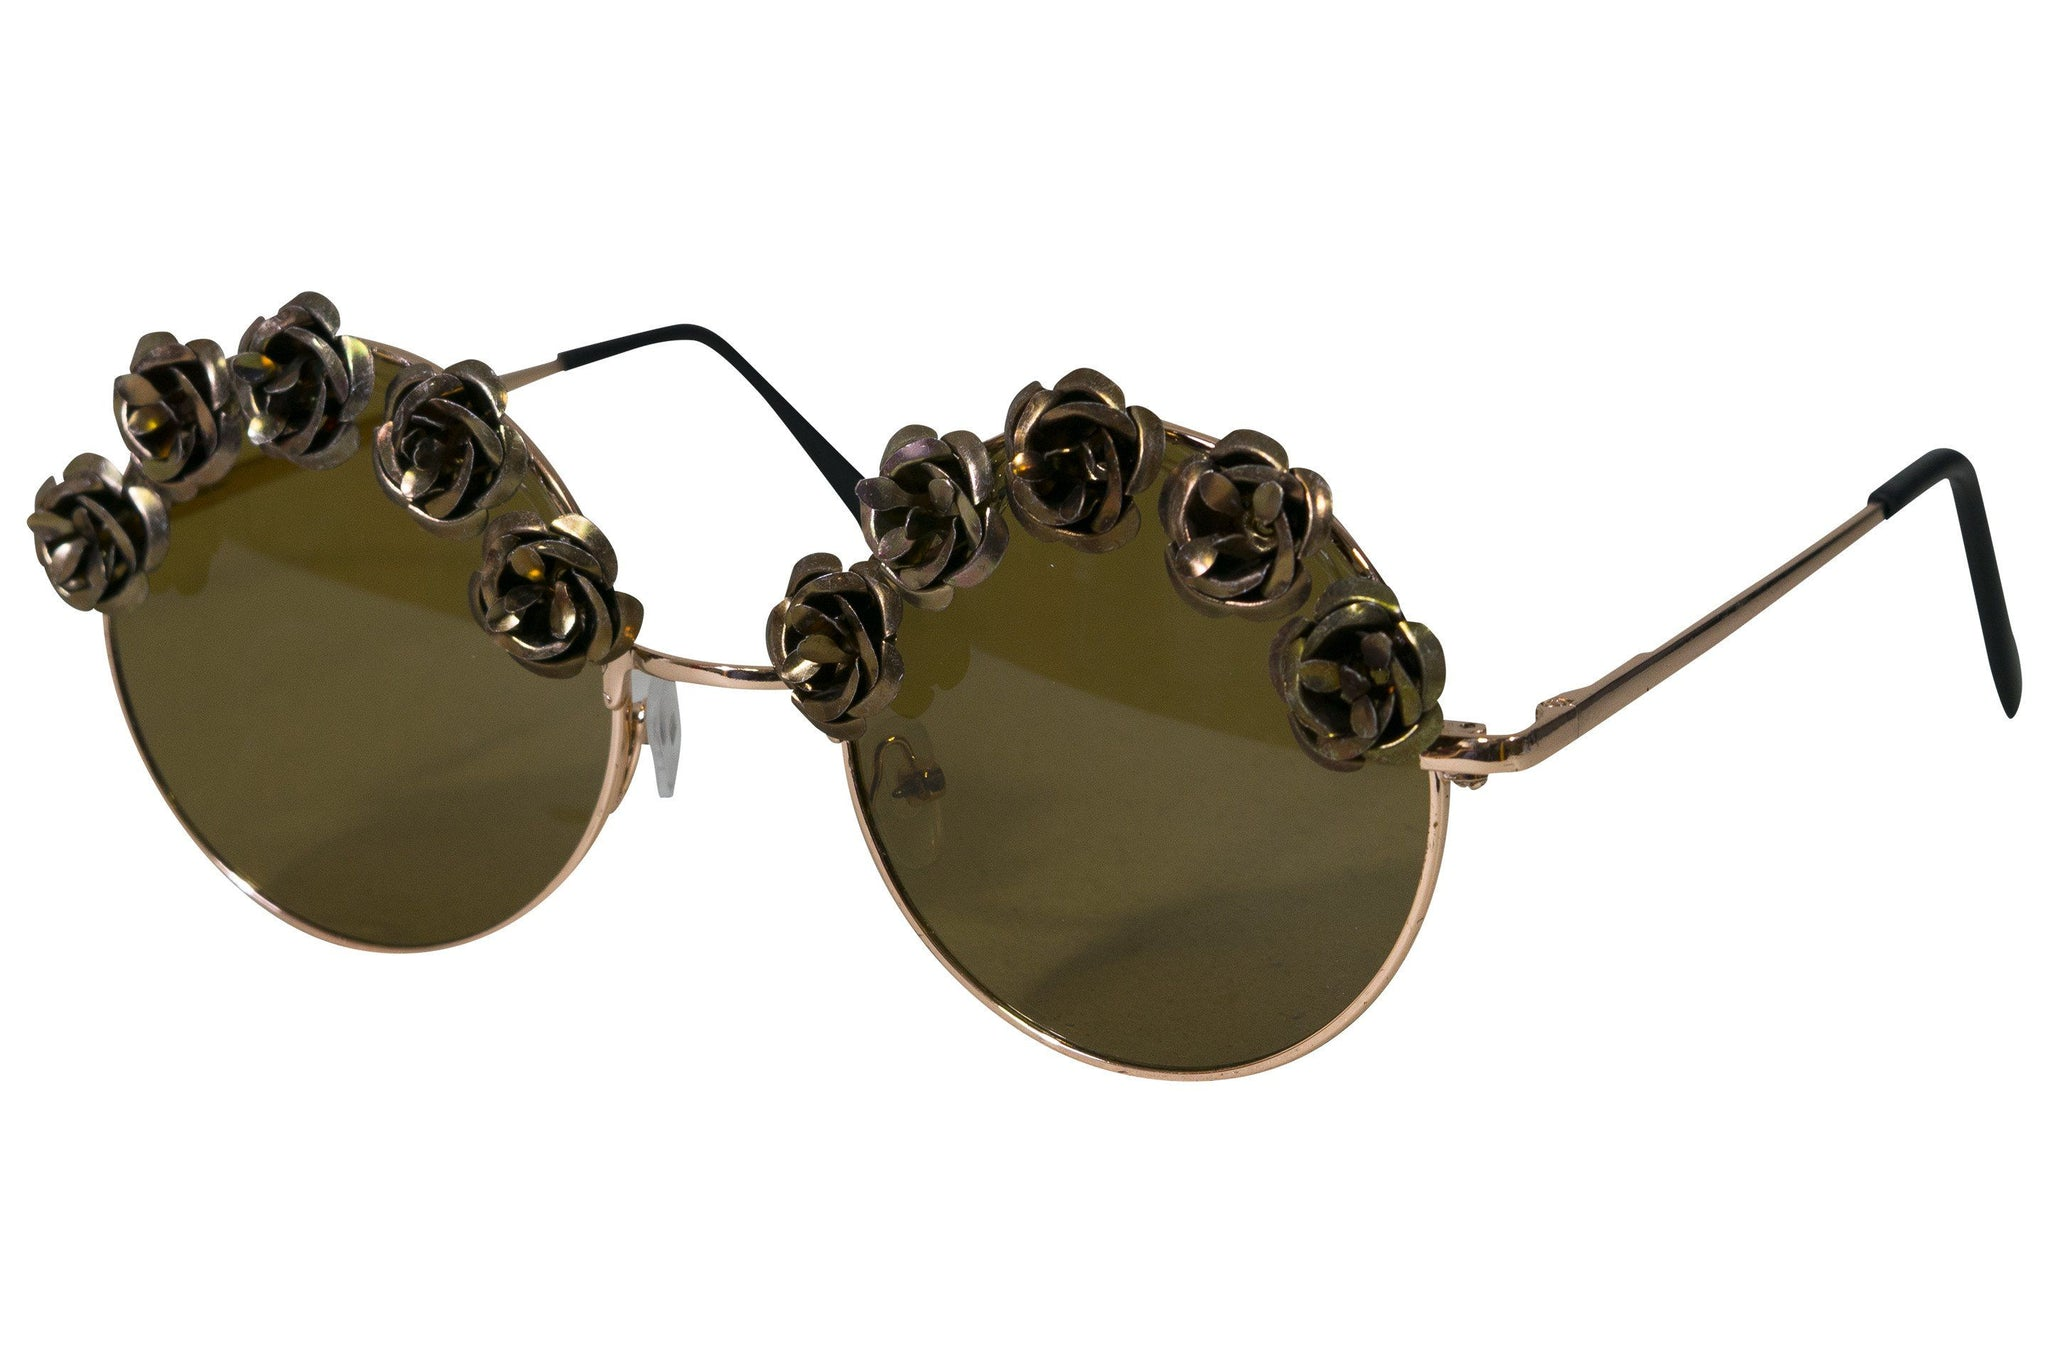 Fancy Sunglasses Festival Hen Do Party Accessories - CCCollections